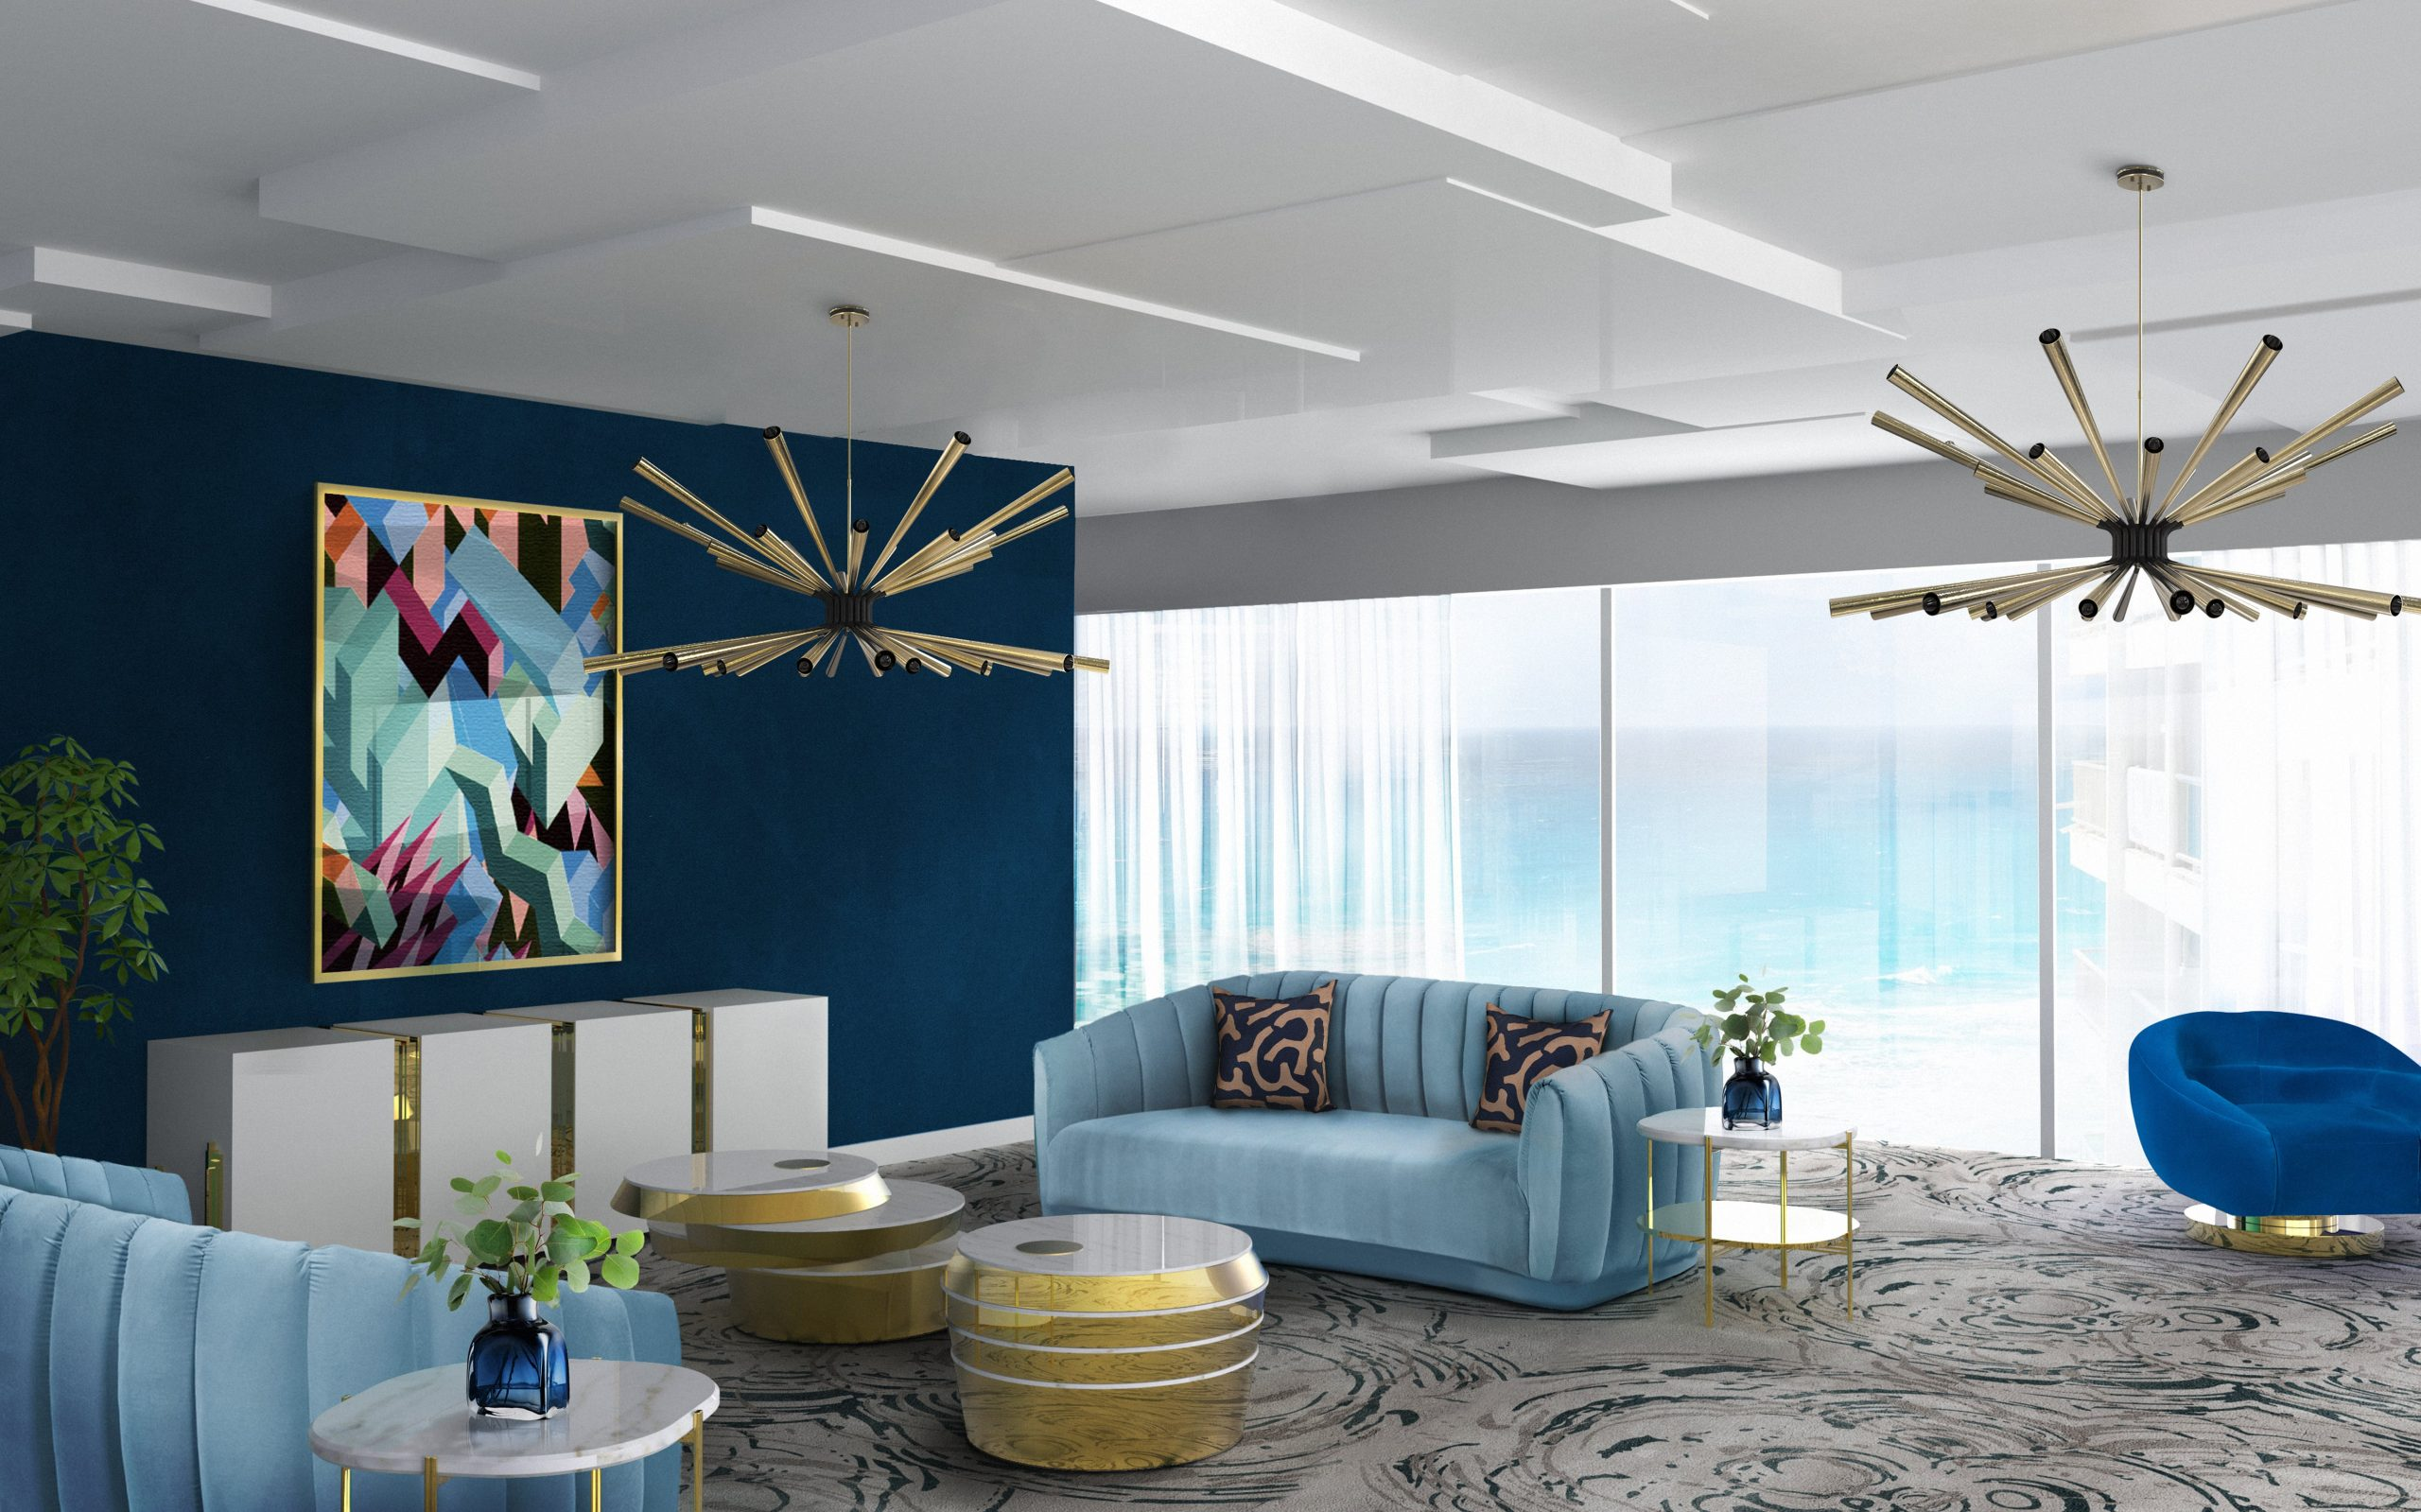 Blue Chairs: Modern and Comfortable Design For Every Room blue chairs Blue Chairs: Modern and Comfortable Design For Every Room 132 oreas sofa ambiente multimarca min scaled